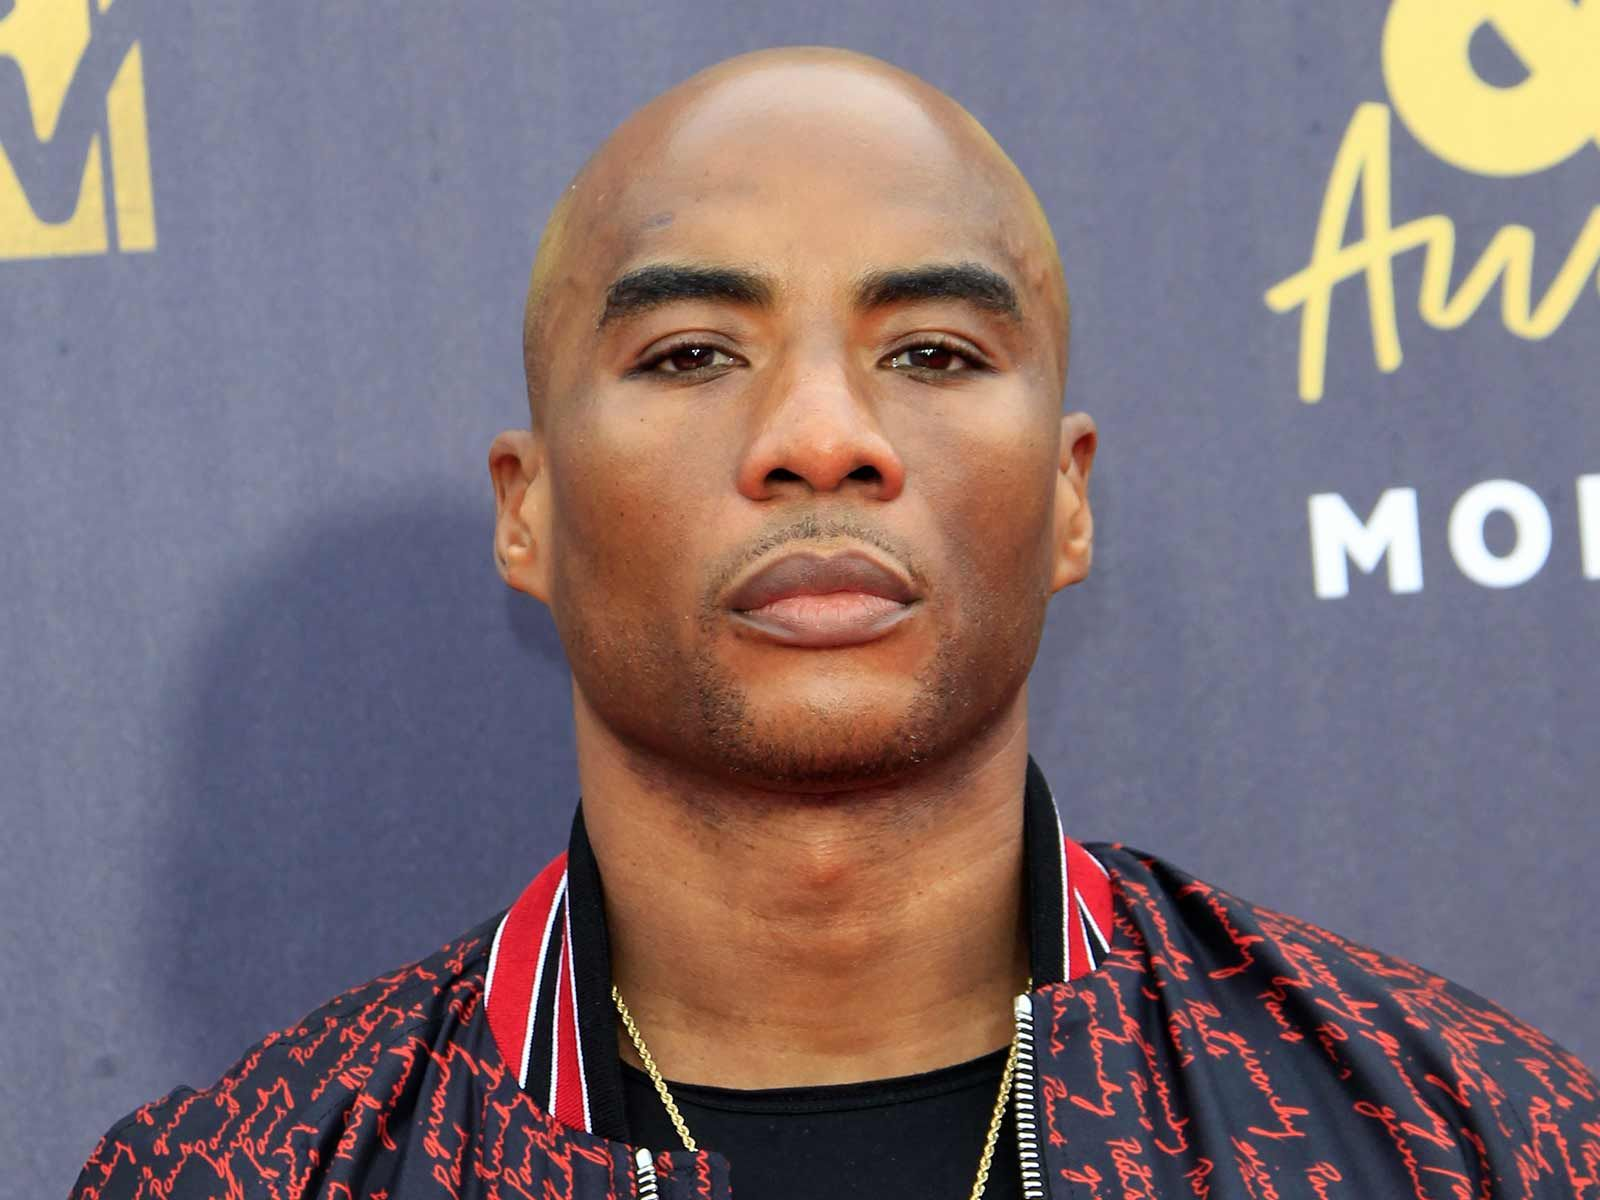 Charlamagne Tha Gods Dna Was Not Found In Accusers Rape Kit